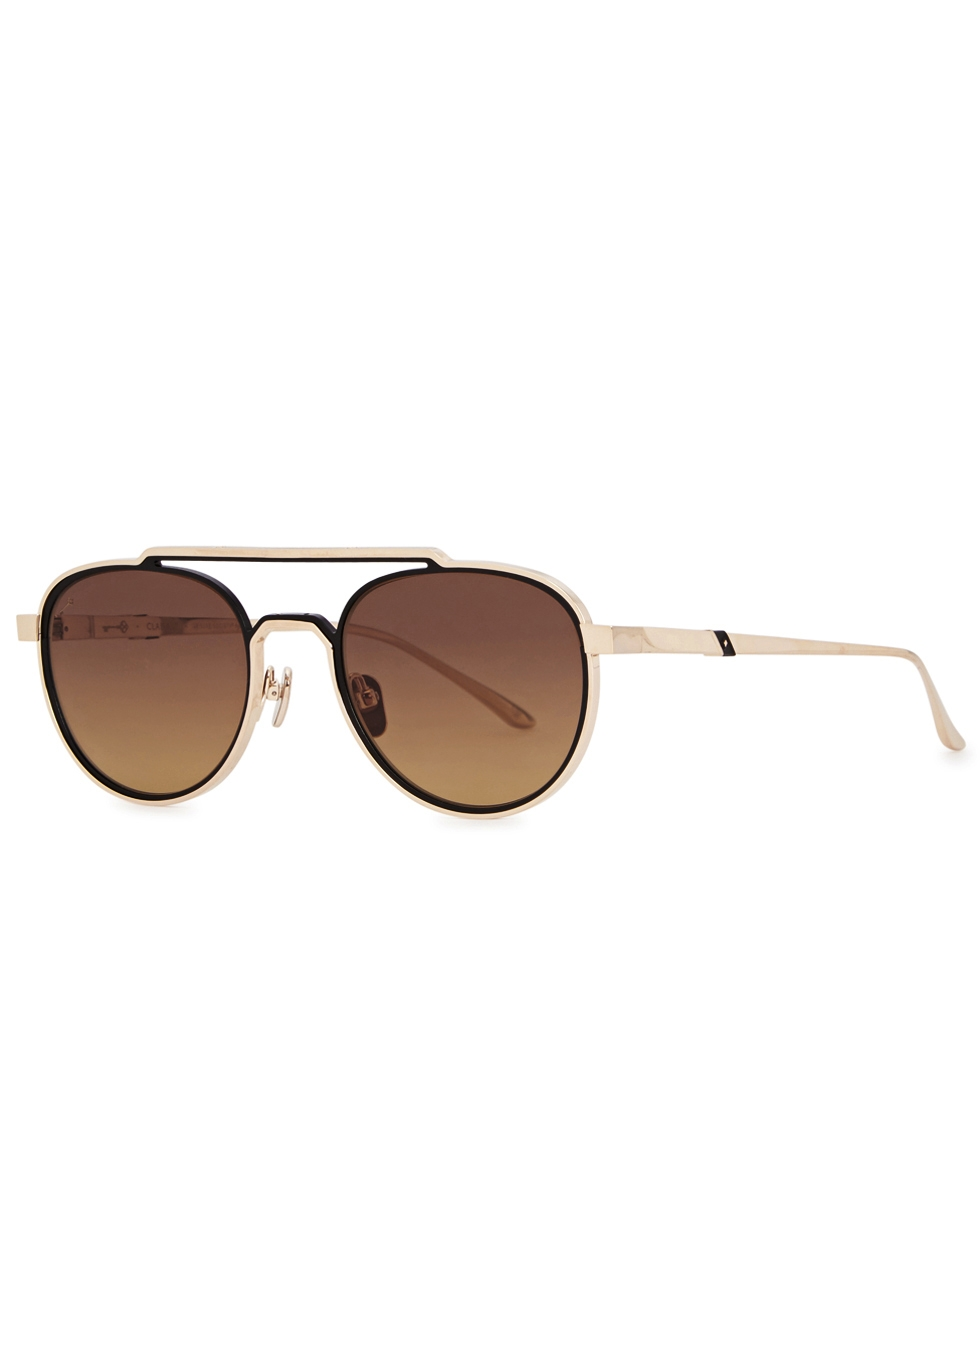 LEISURE SOCIETY CLAIRAUT 18CT GOLD-PLATED SUNGLASSES